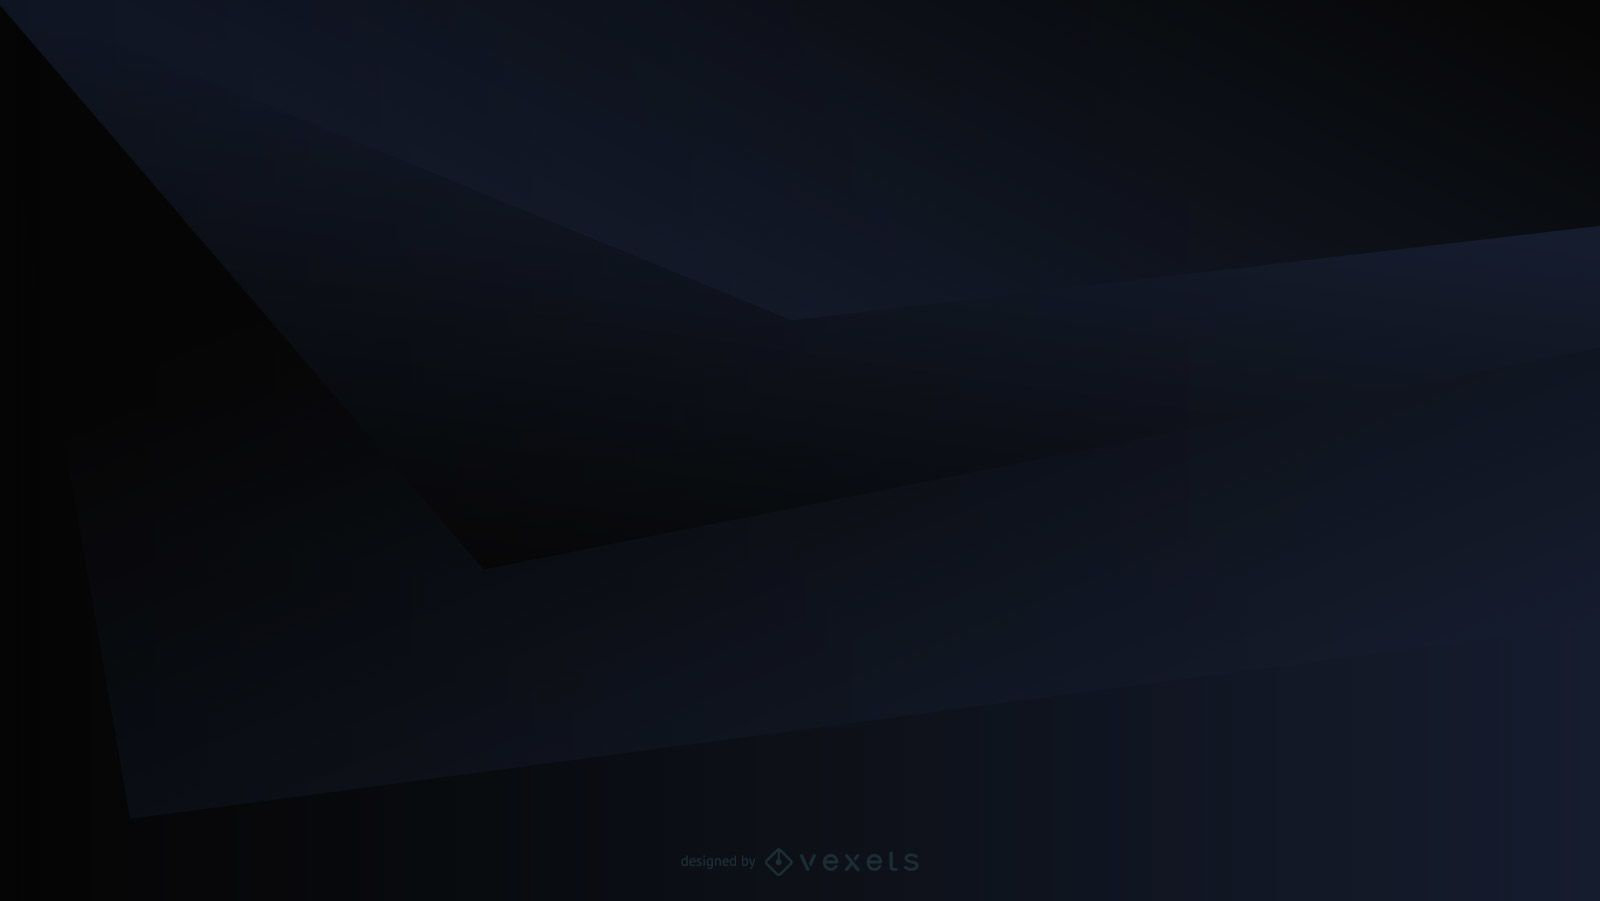 Black abstract background design